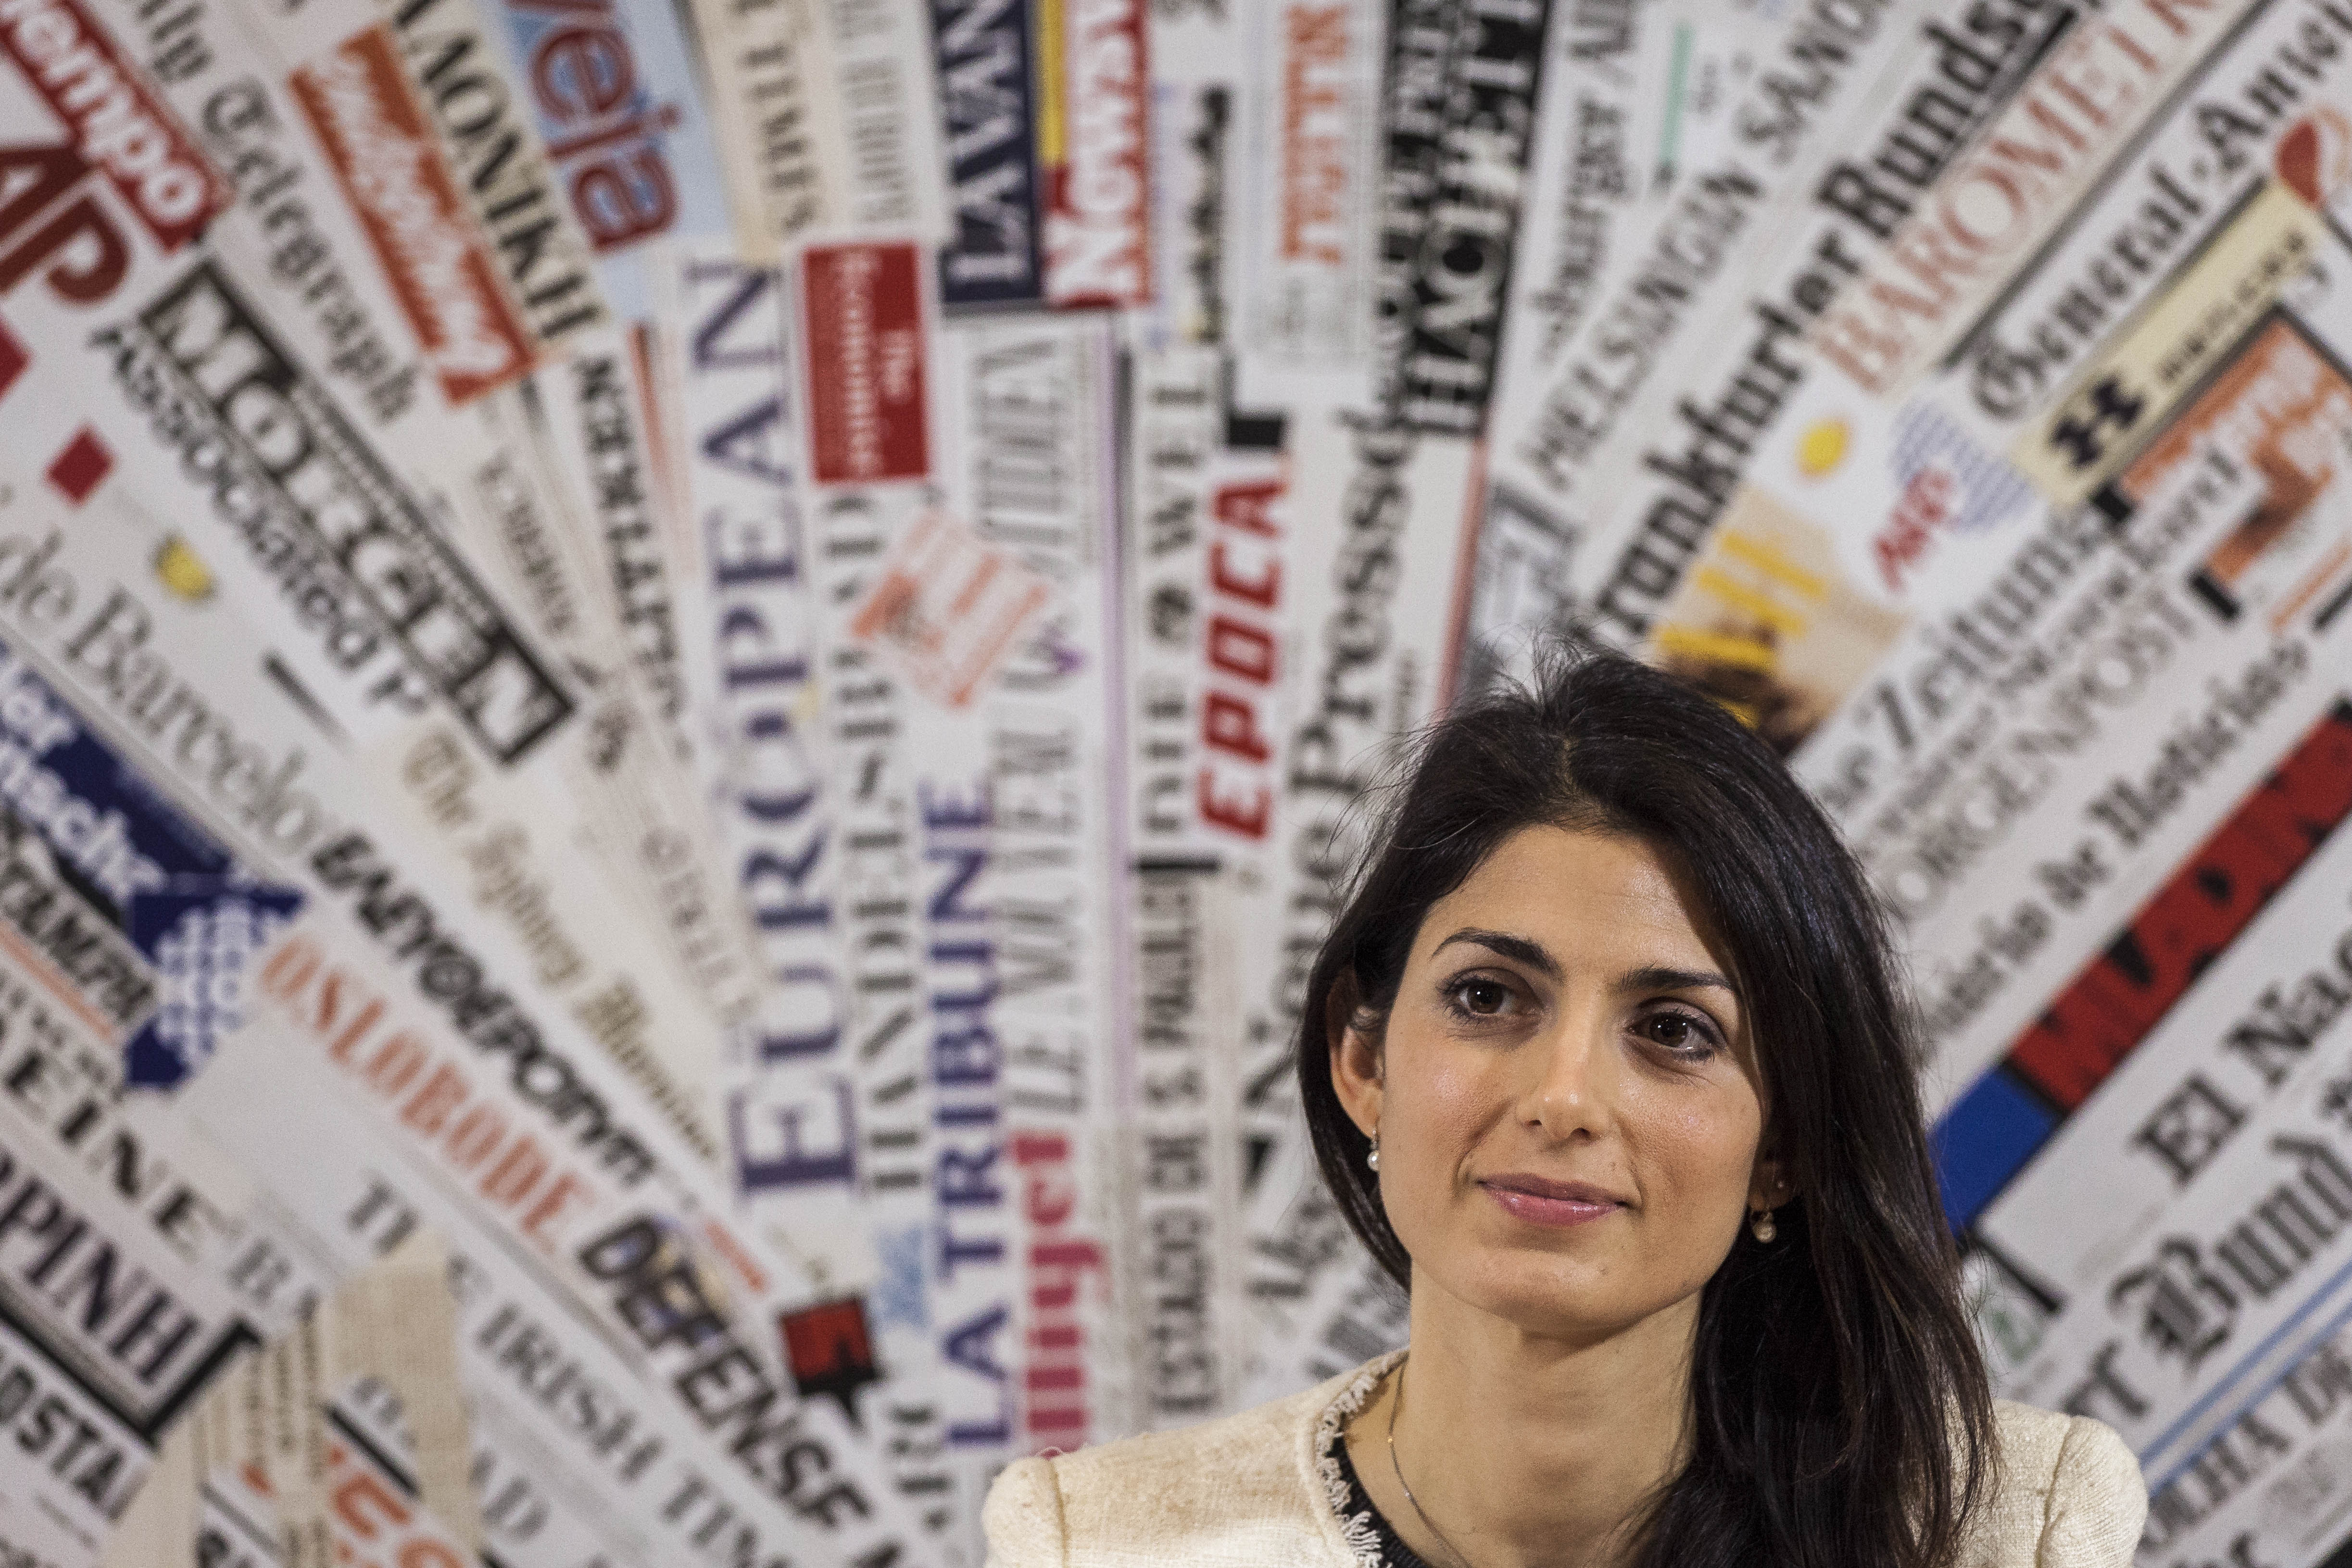 Virginia Raggi Five Star movement Rome's mayor candidate